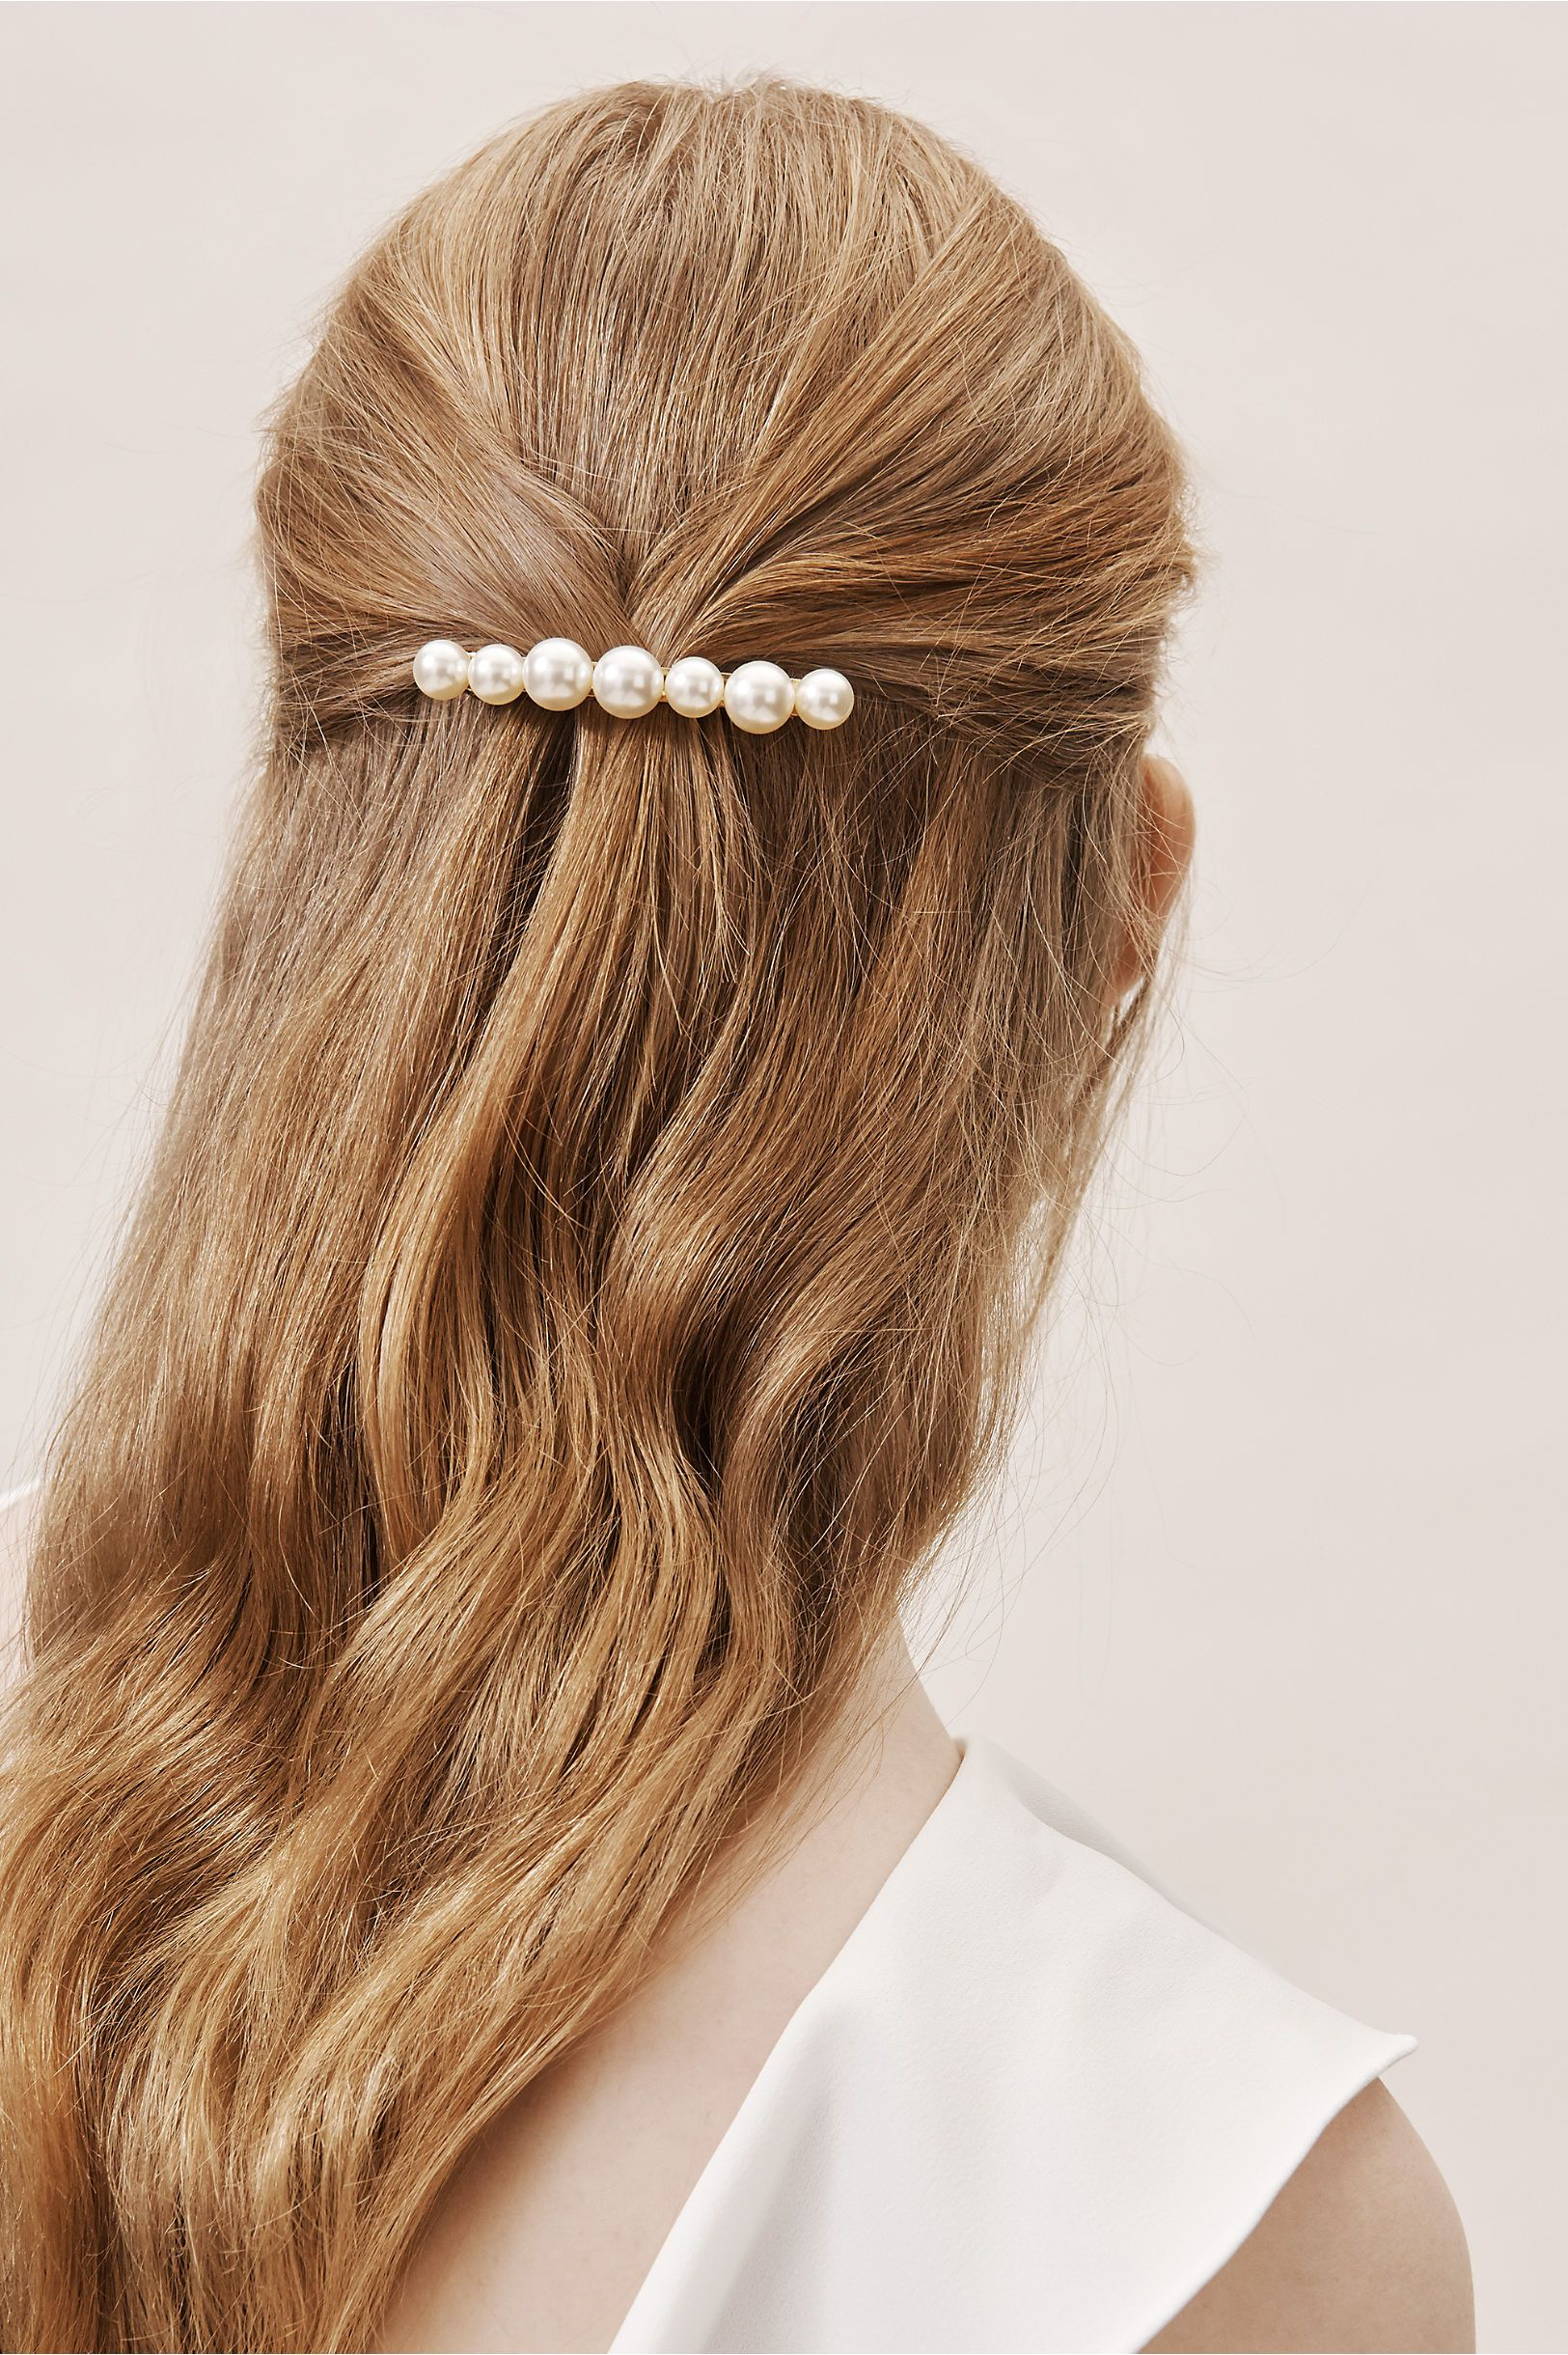 04afdad81 BHLDN's Jennifer Behr Pim Pearl Barrette in Pearl in 2019 | Products ...